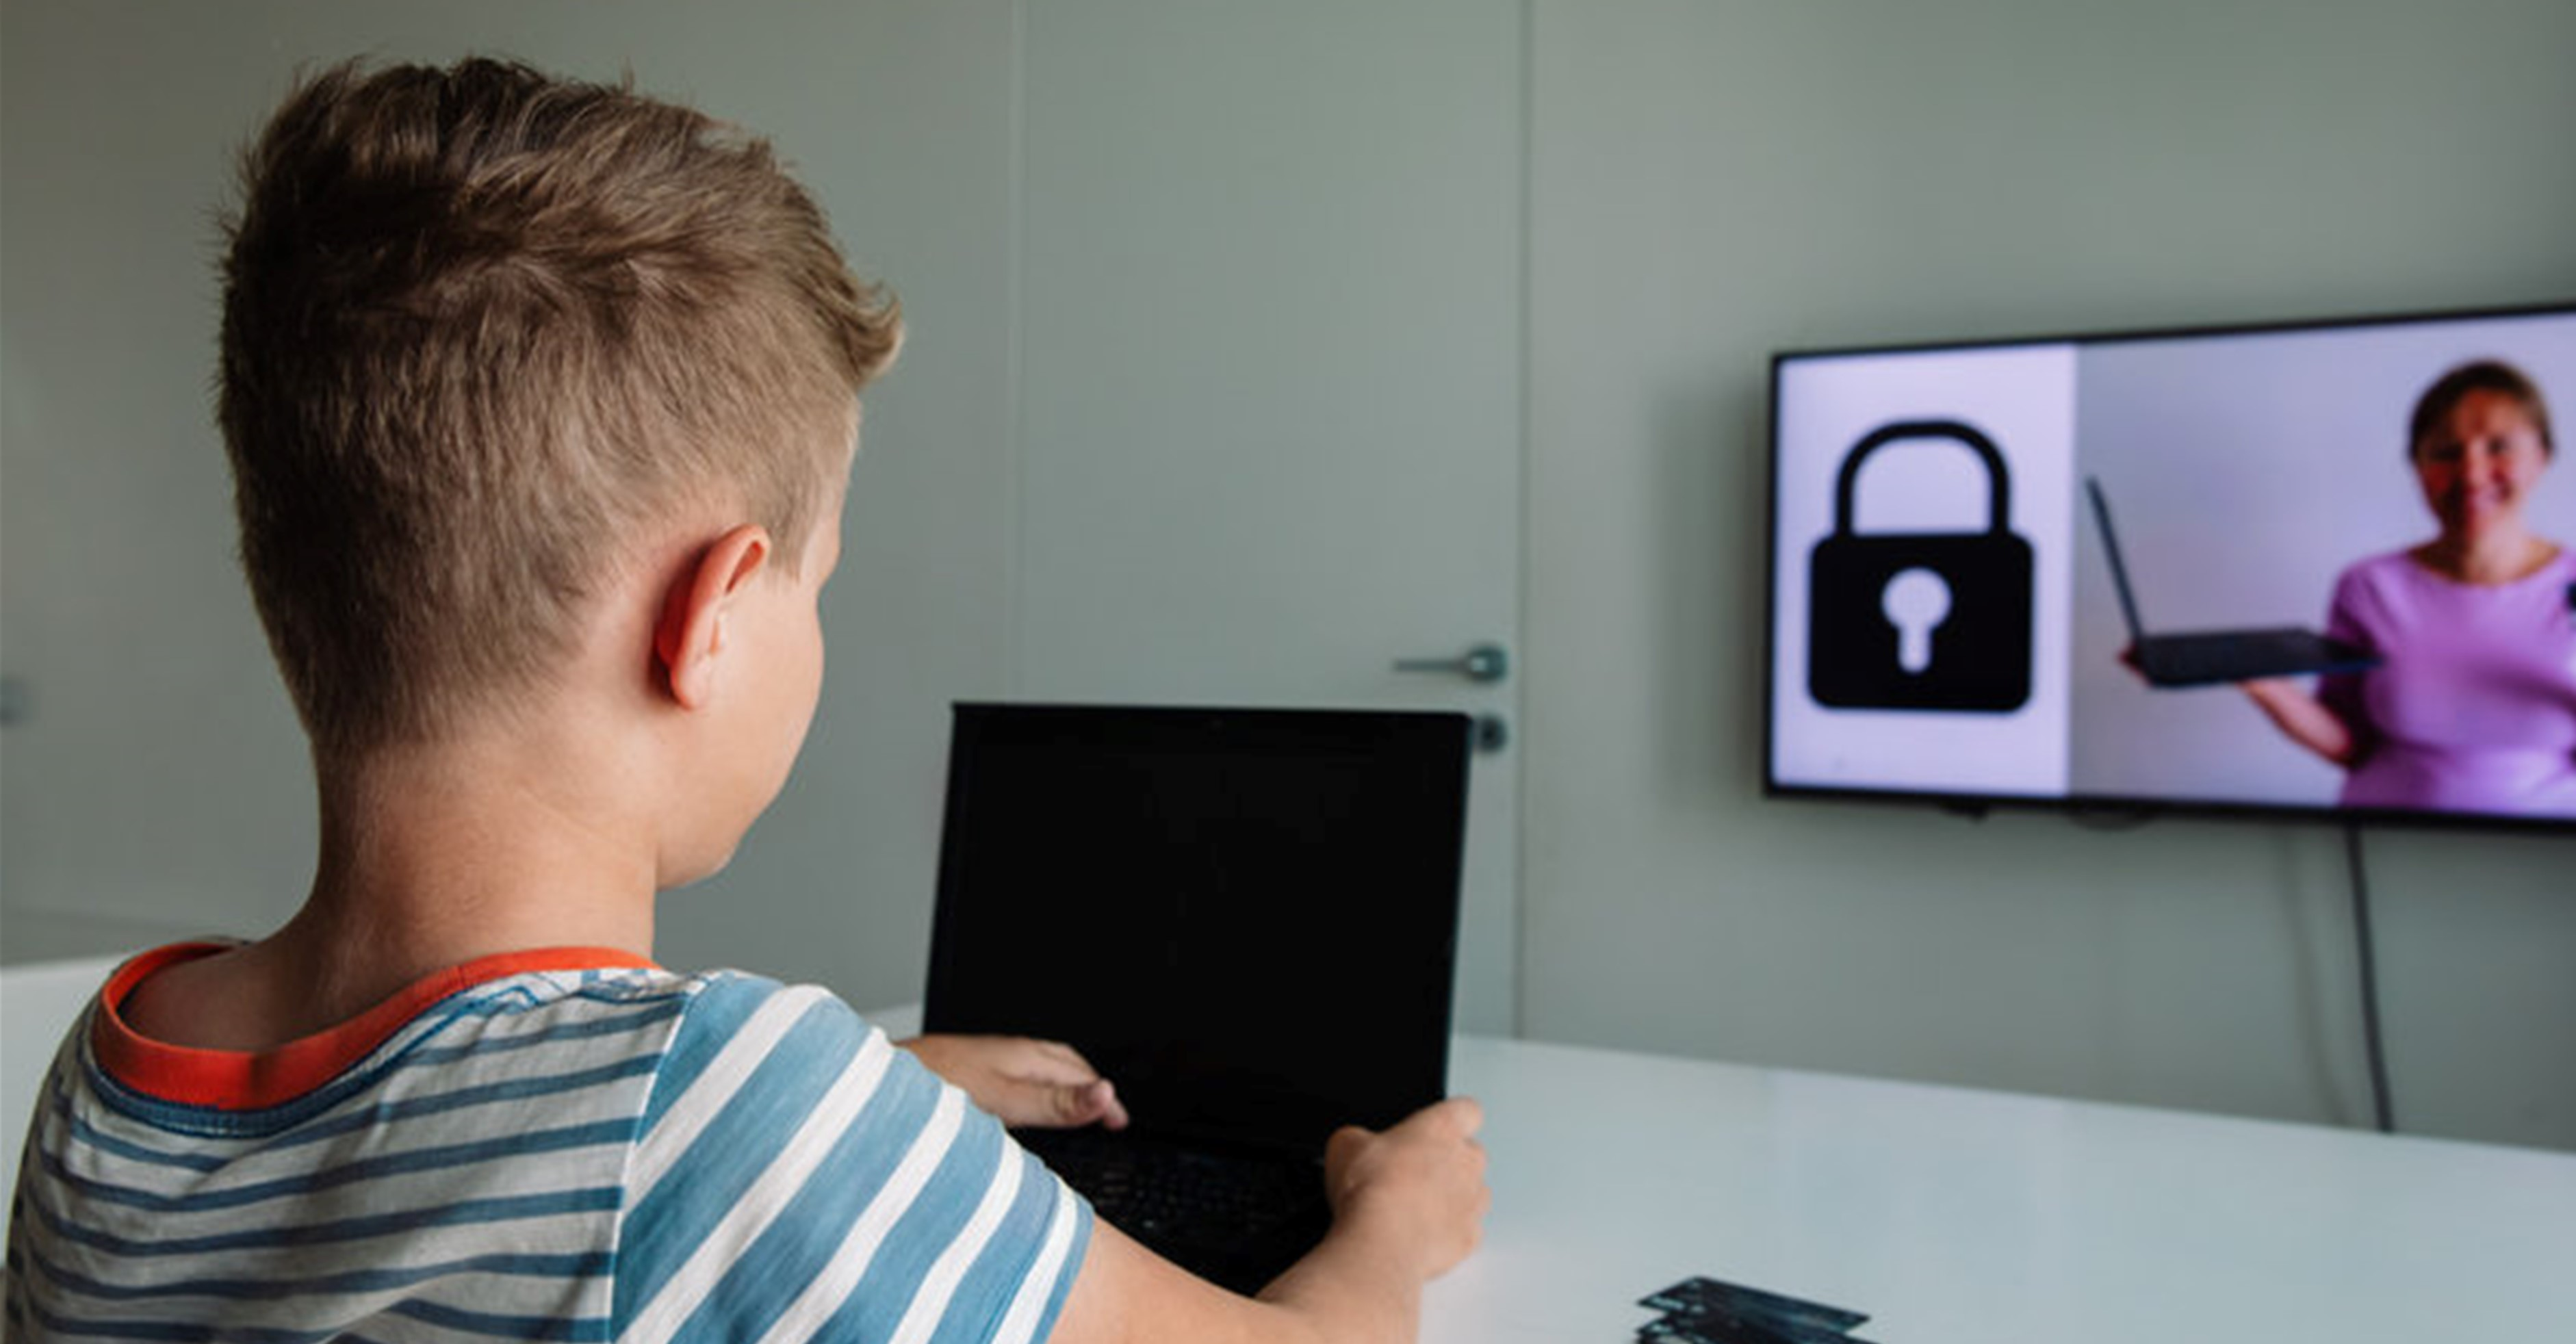 Kids Need to Understand Personal Data